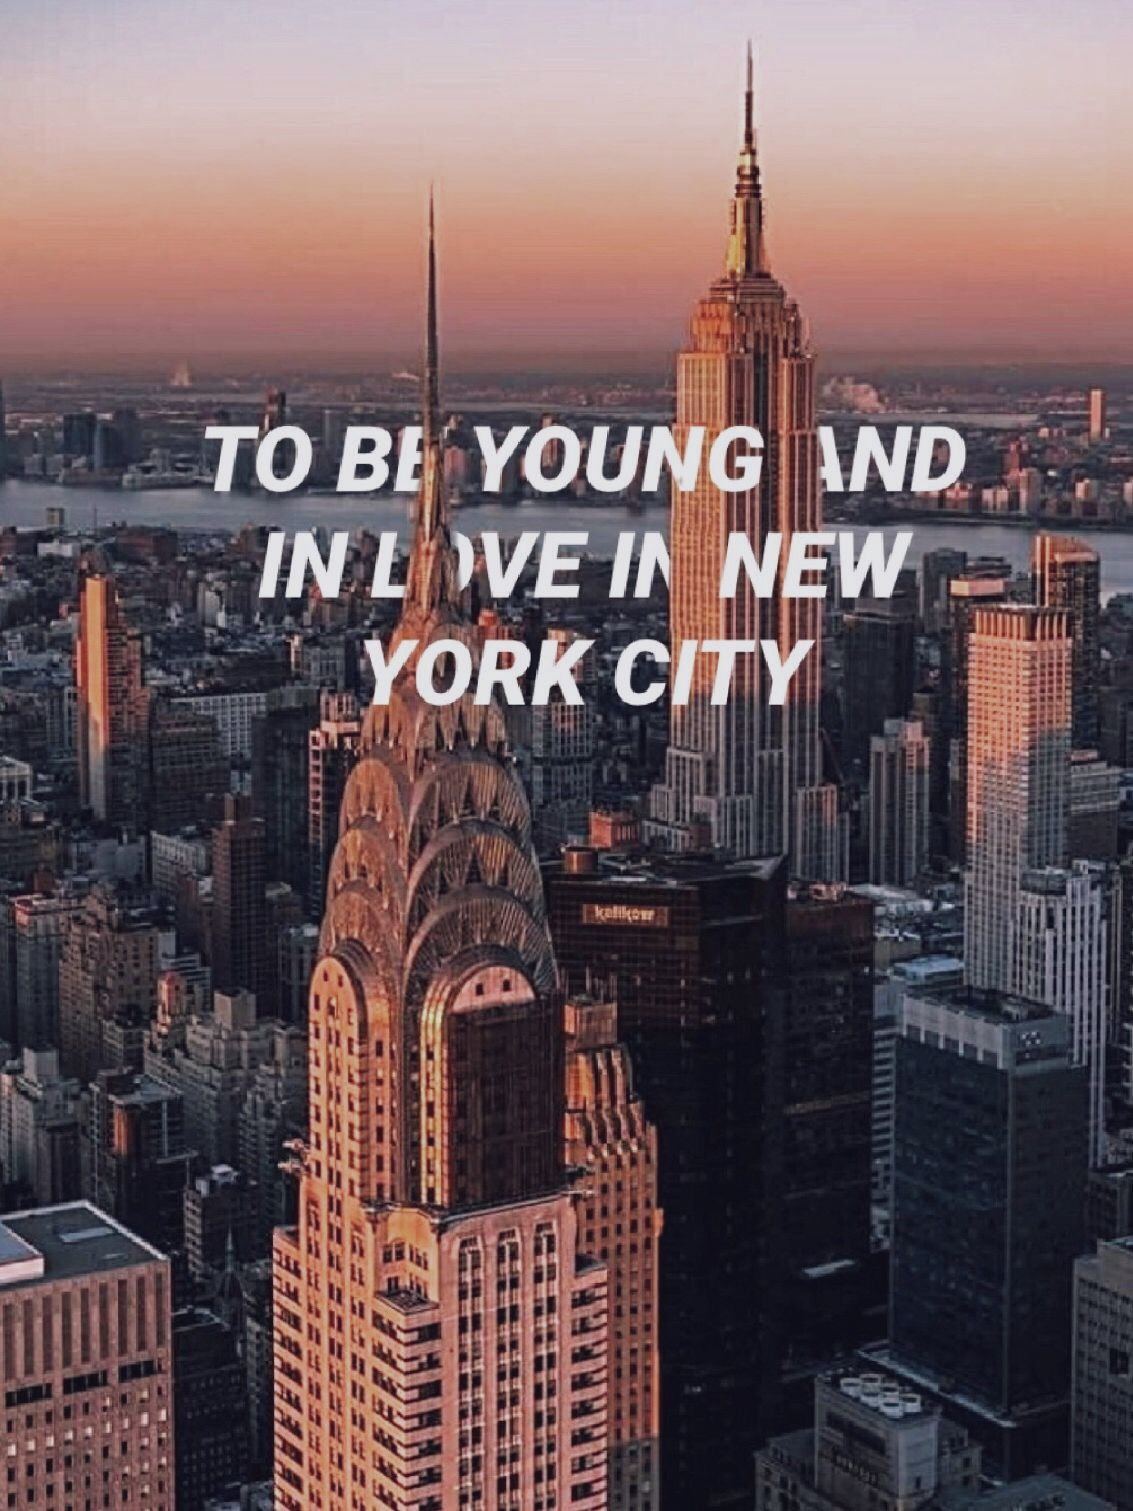 Wallpapers 4k Free Iphone Mobile Games Phone Wallpaper New York Wallpaper City Wallpaper New York Travel